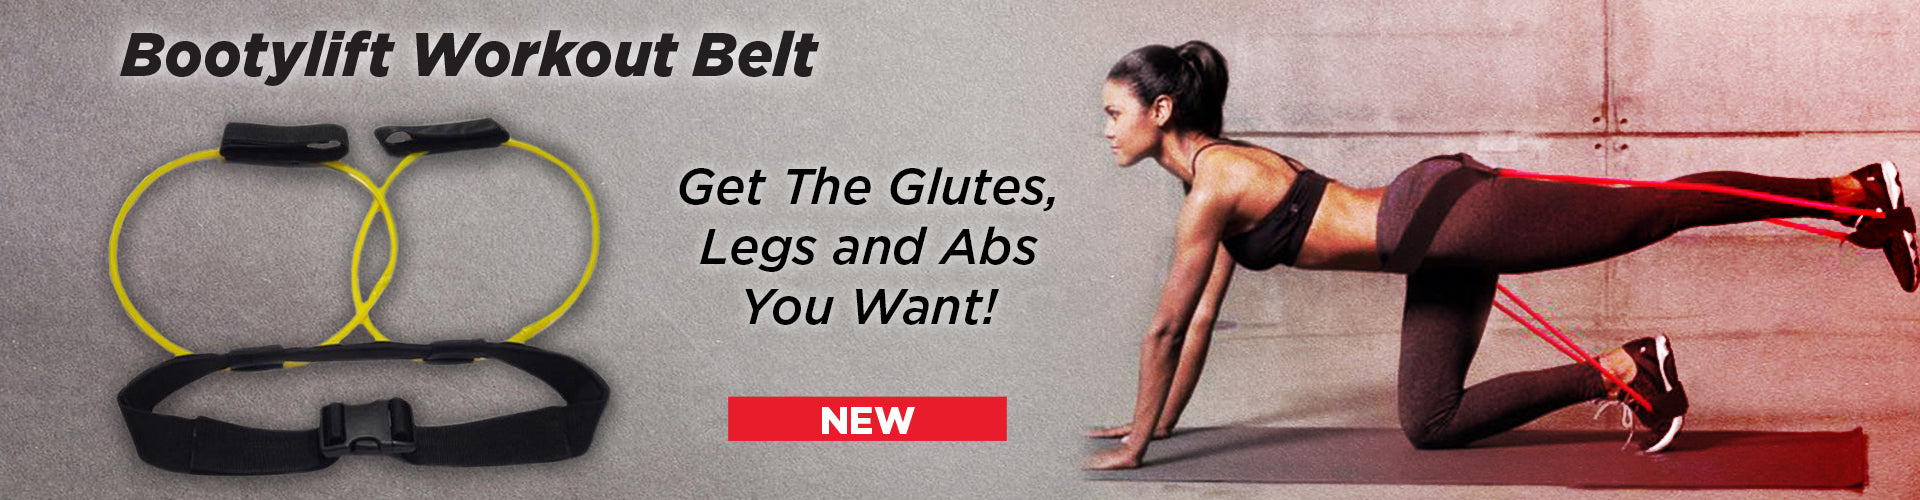 Workout Belt Sale